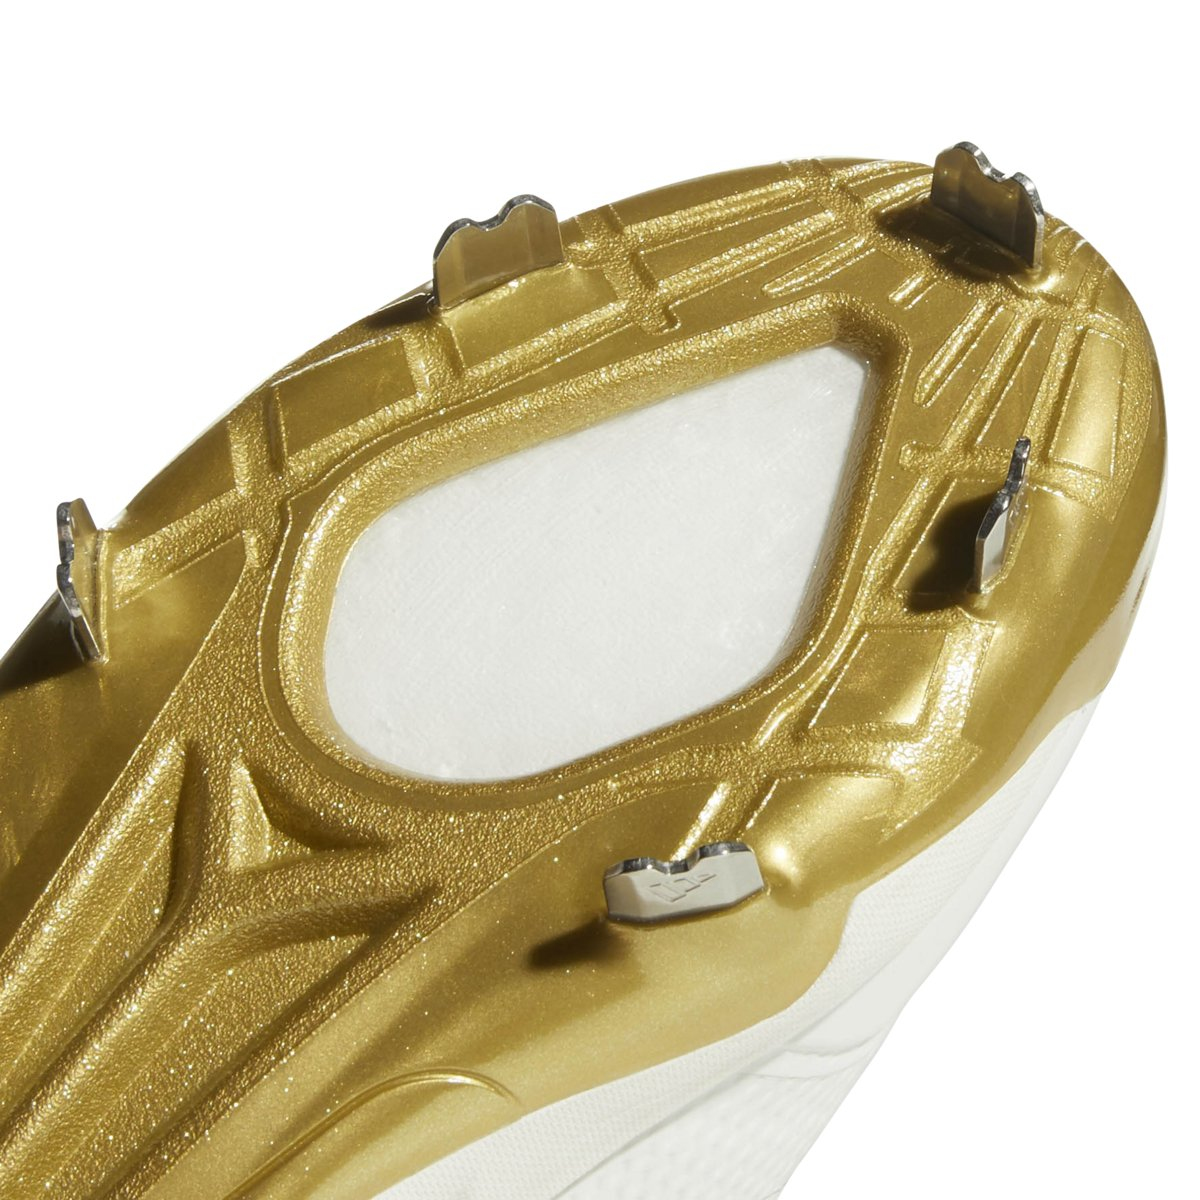 adidas Icon 4 Cleat - Men's Baseball 11 White/Gold Metallic by adidas (Image #1)